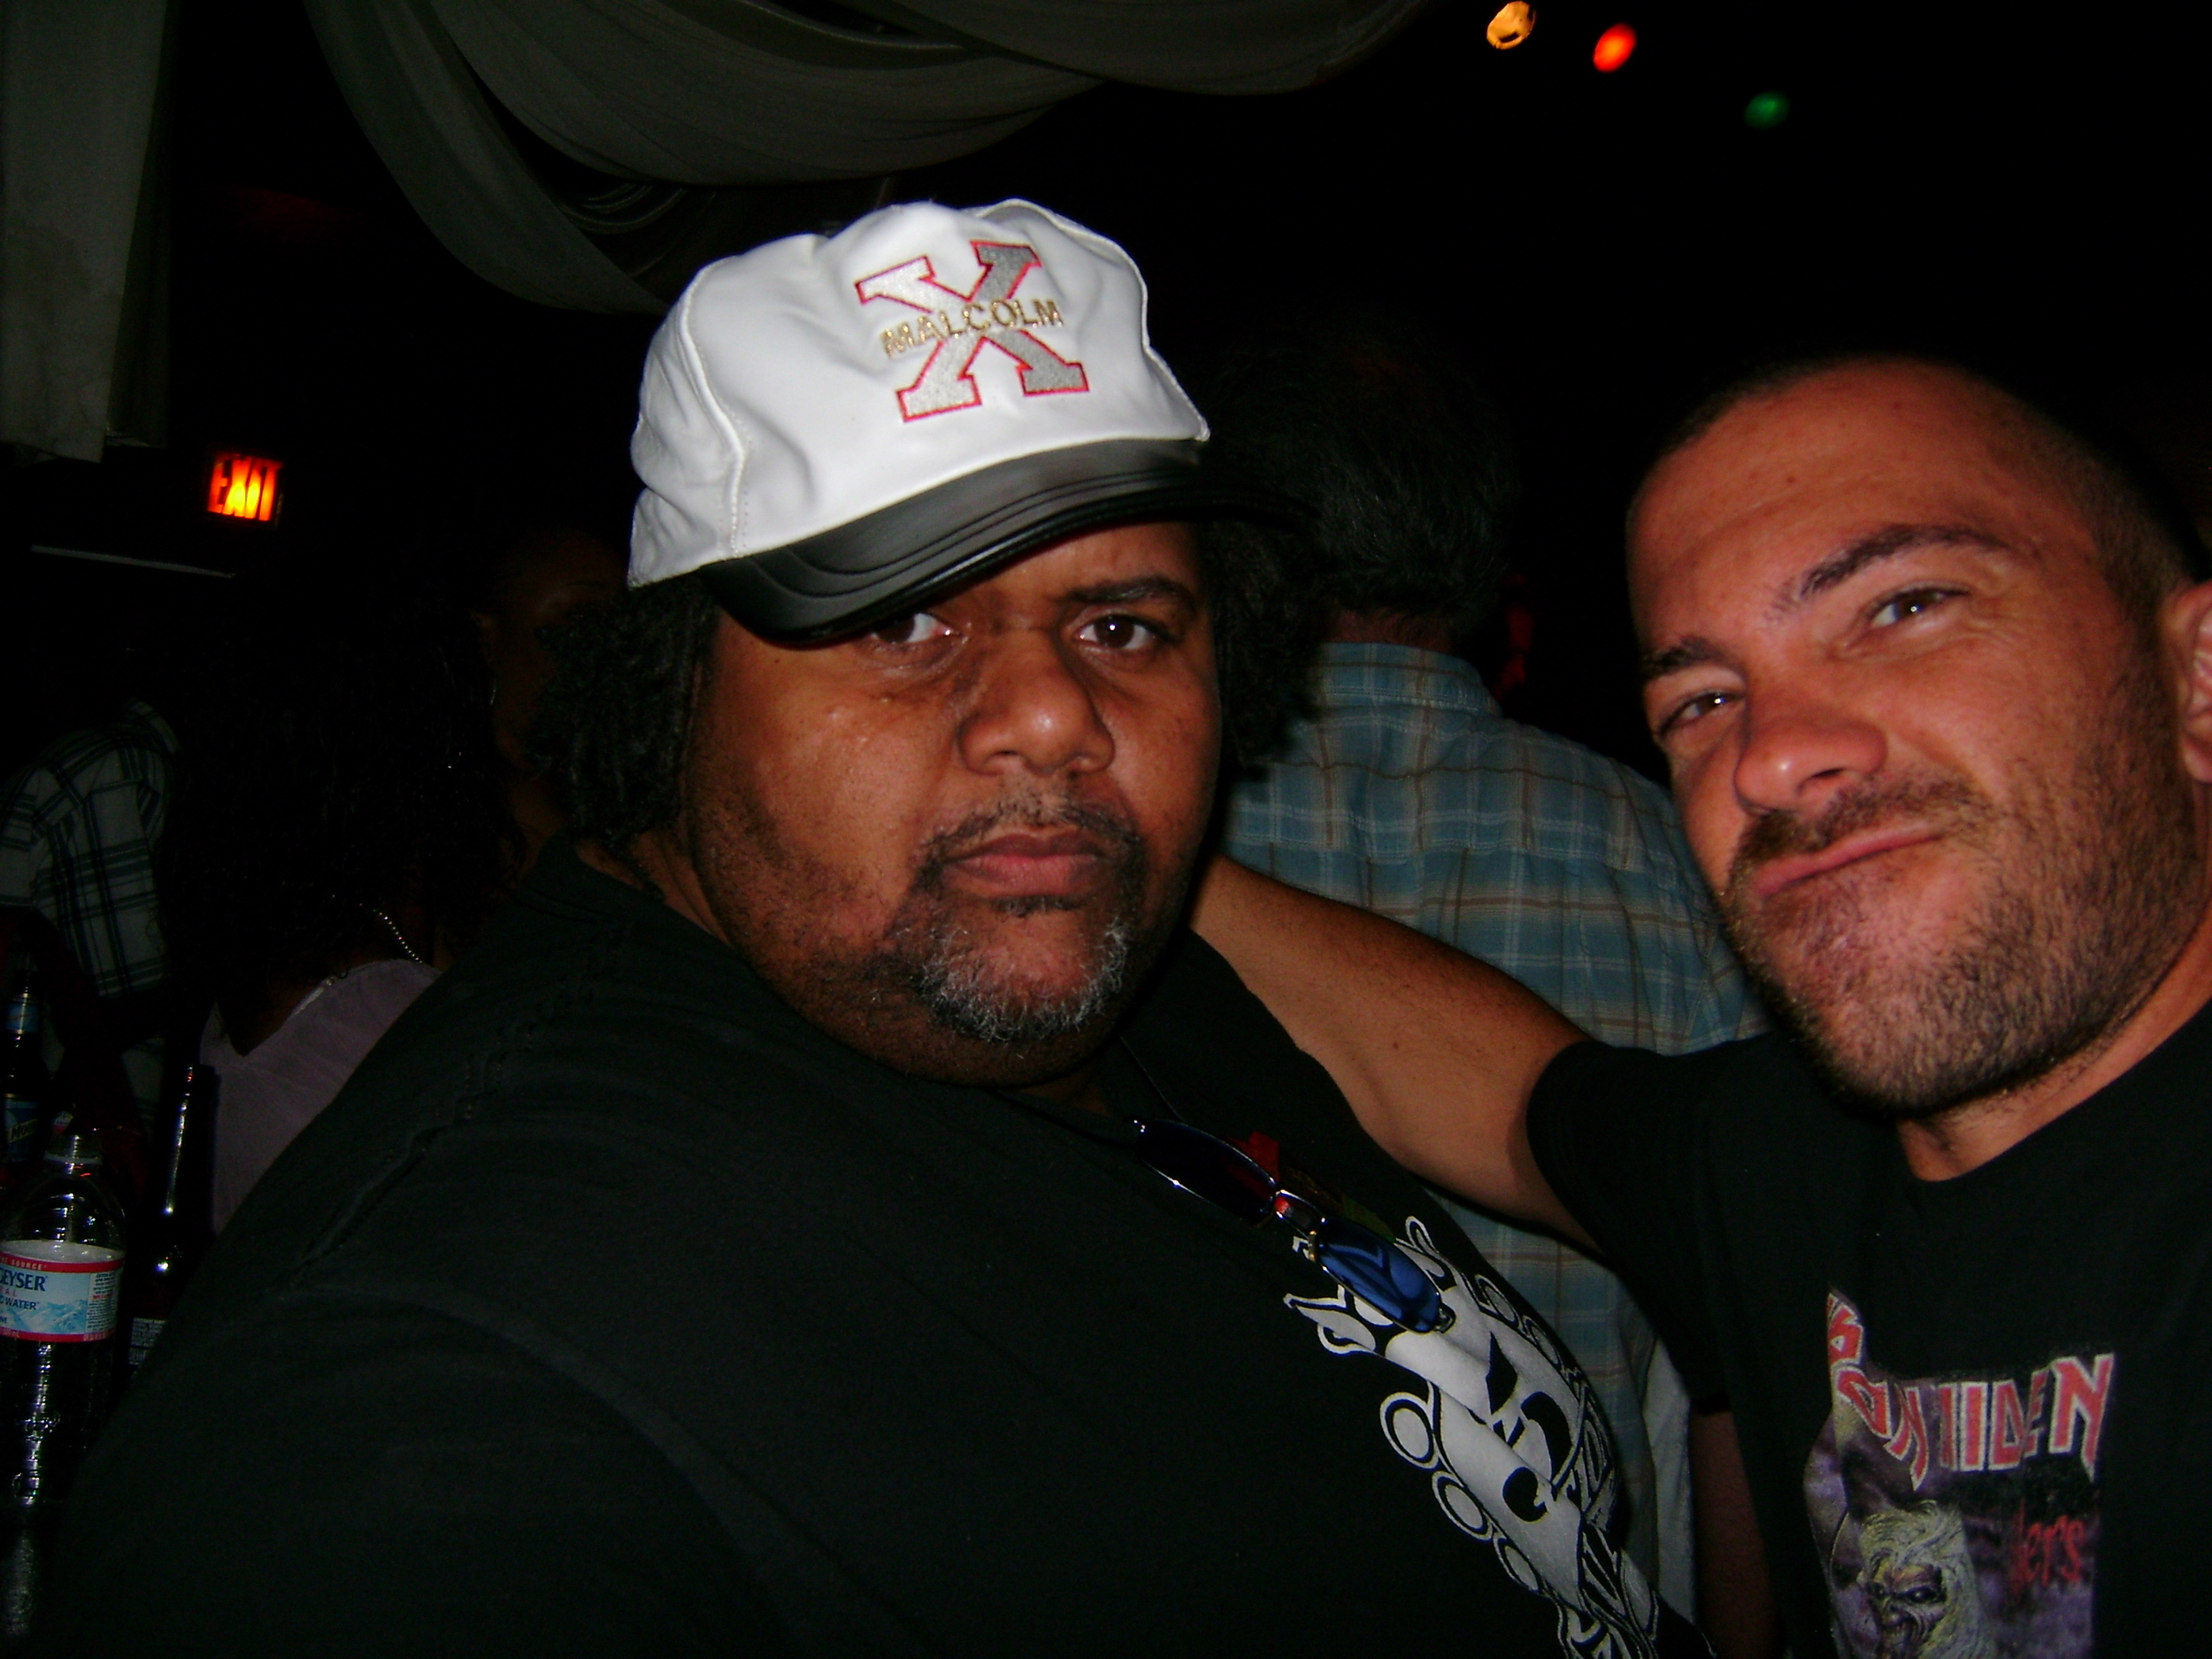 with L.A., DJ legend - Mark Luv